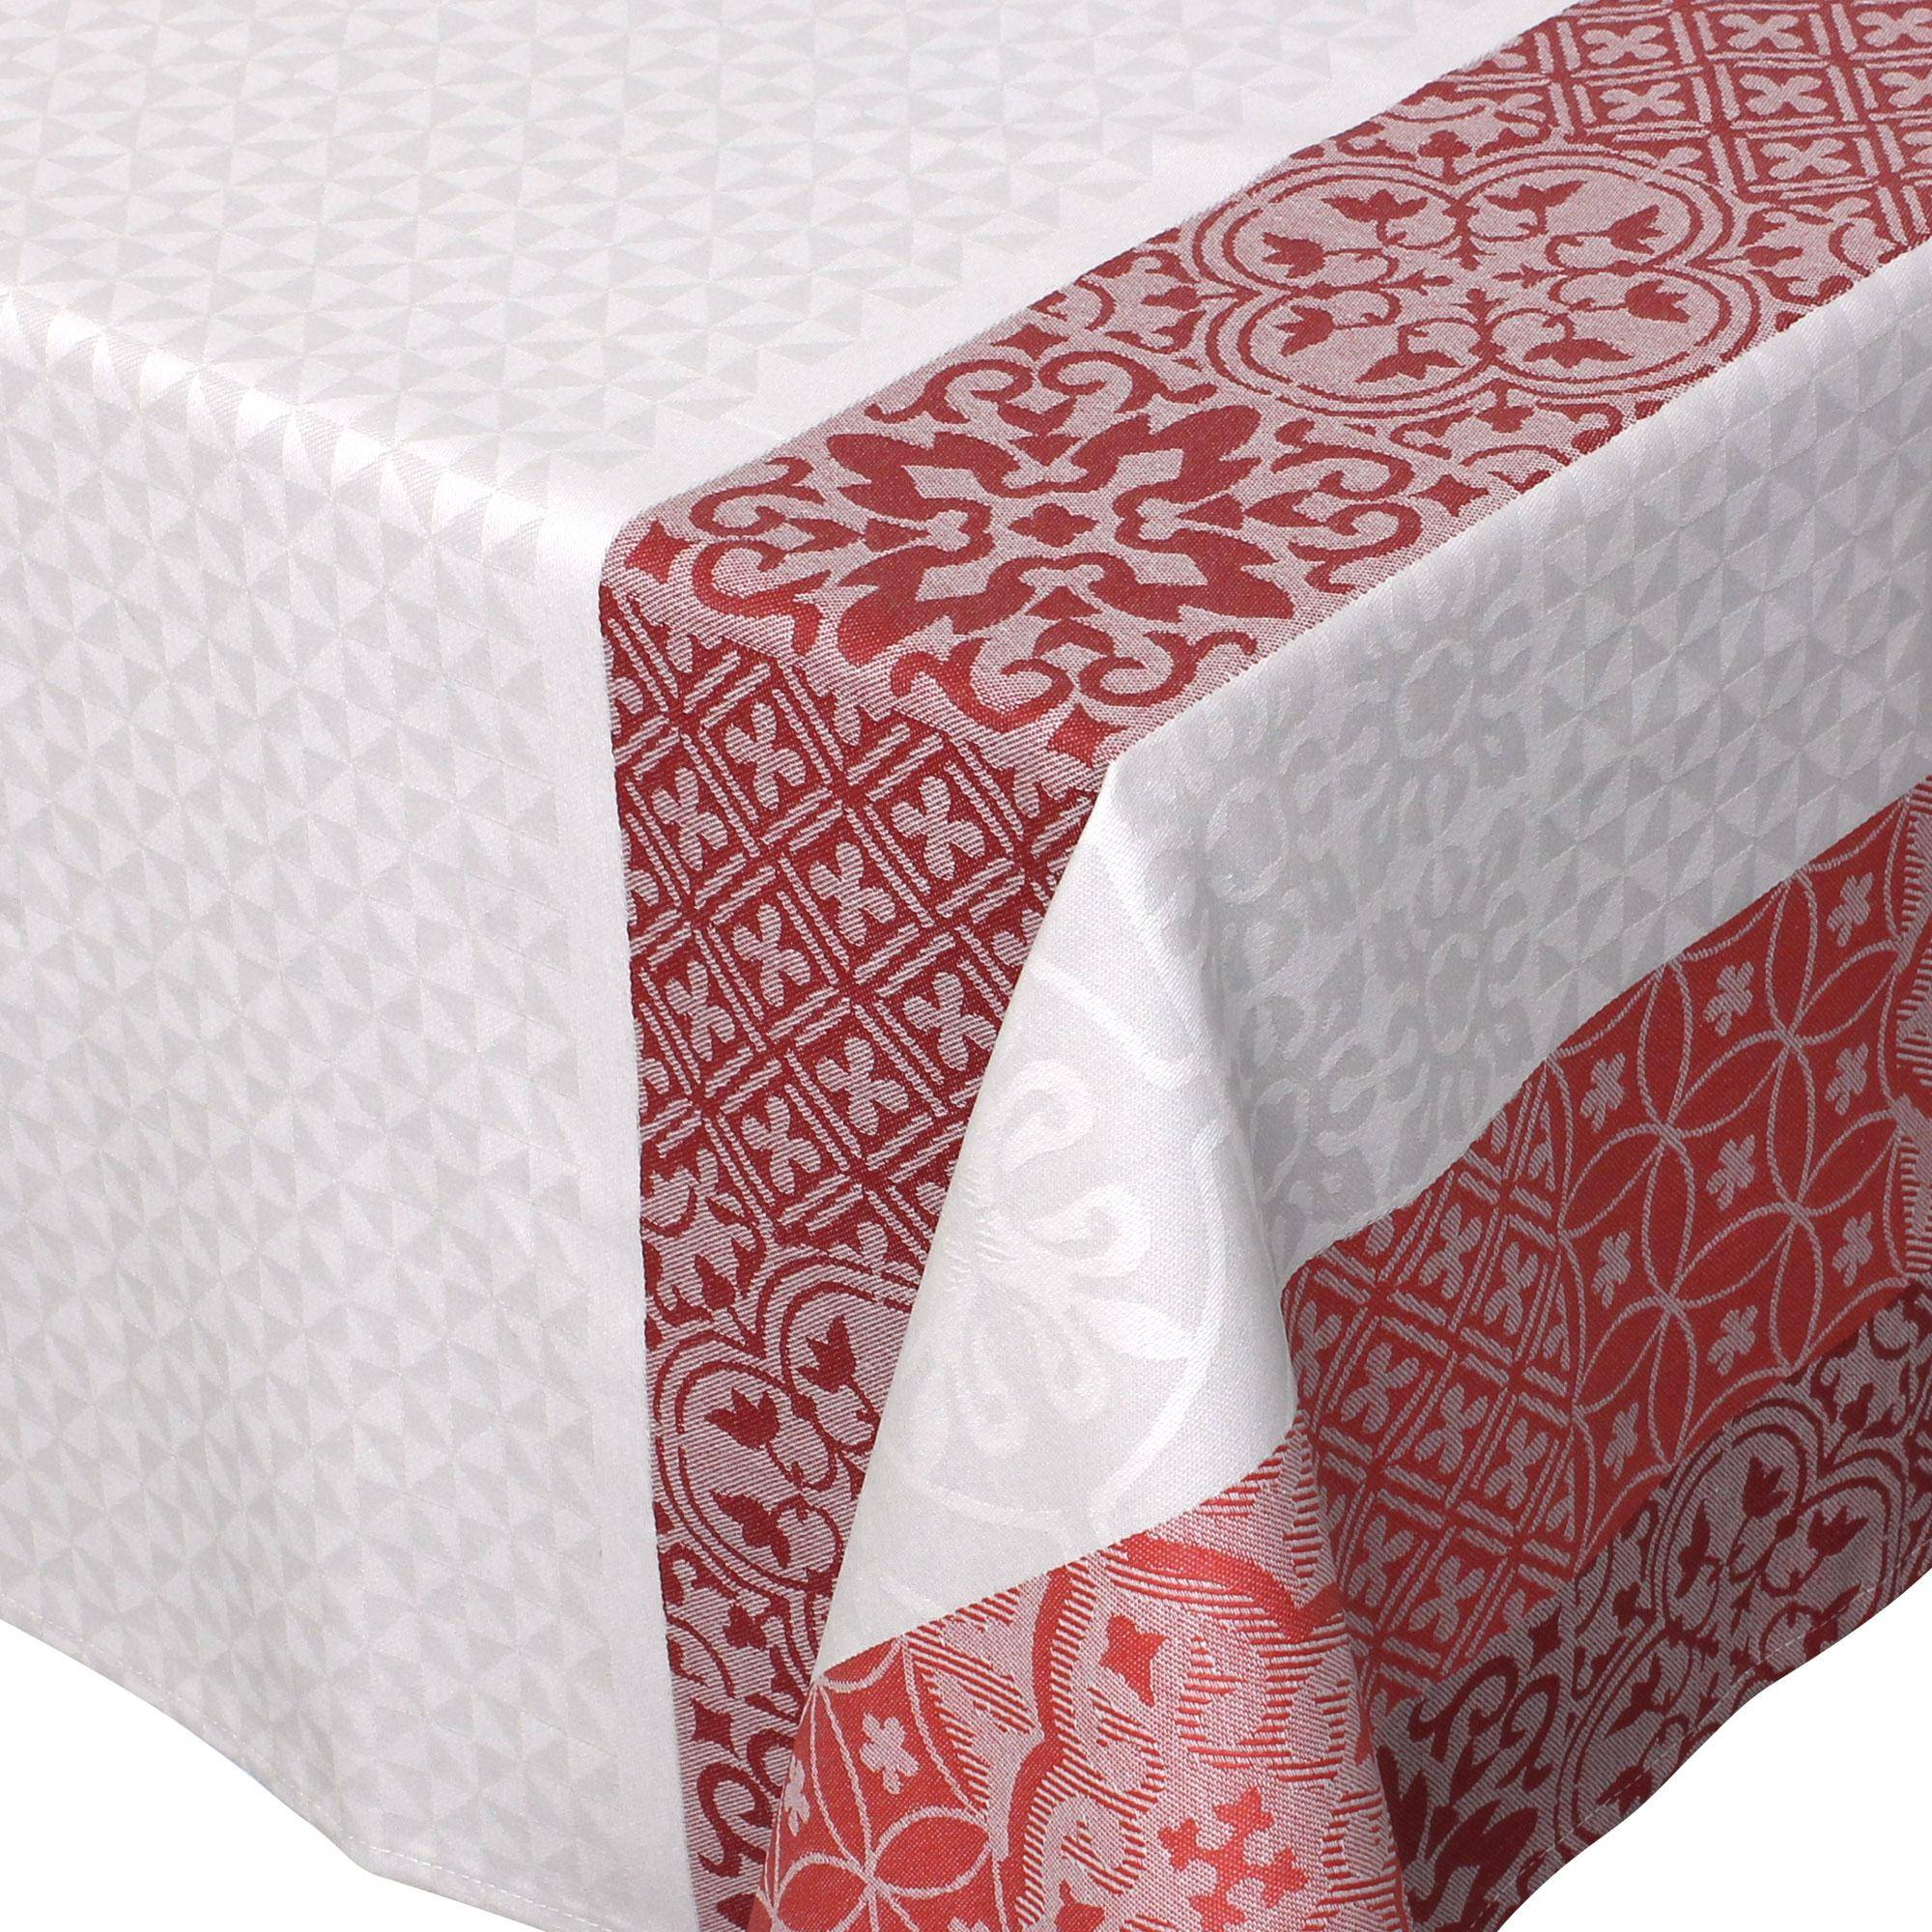 Linnea Nappe carrée 170x170 cm Jacquard 100% coton + enduction acrylique MOSAIC RUBIS Rouge